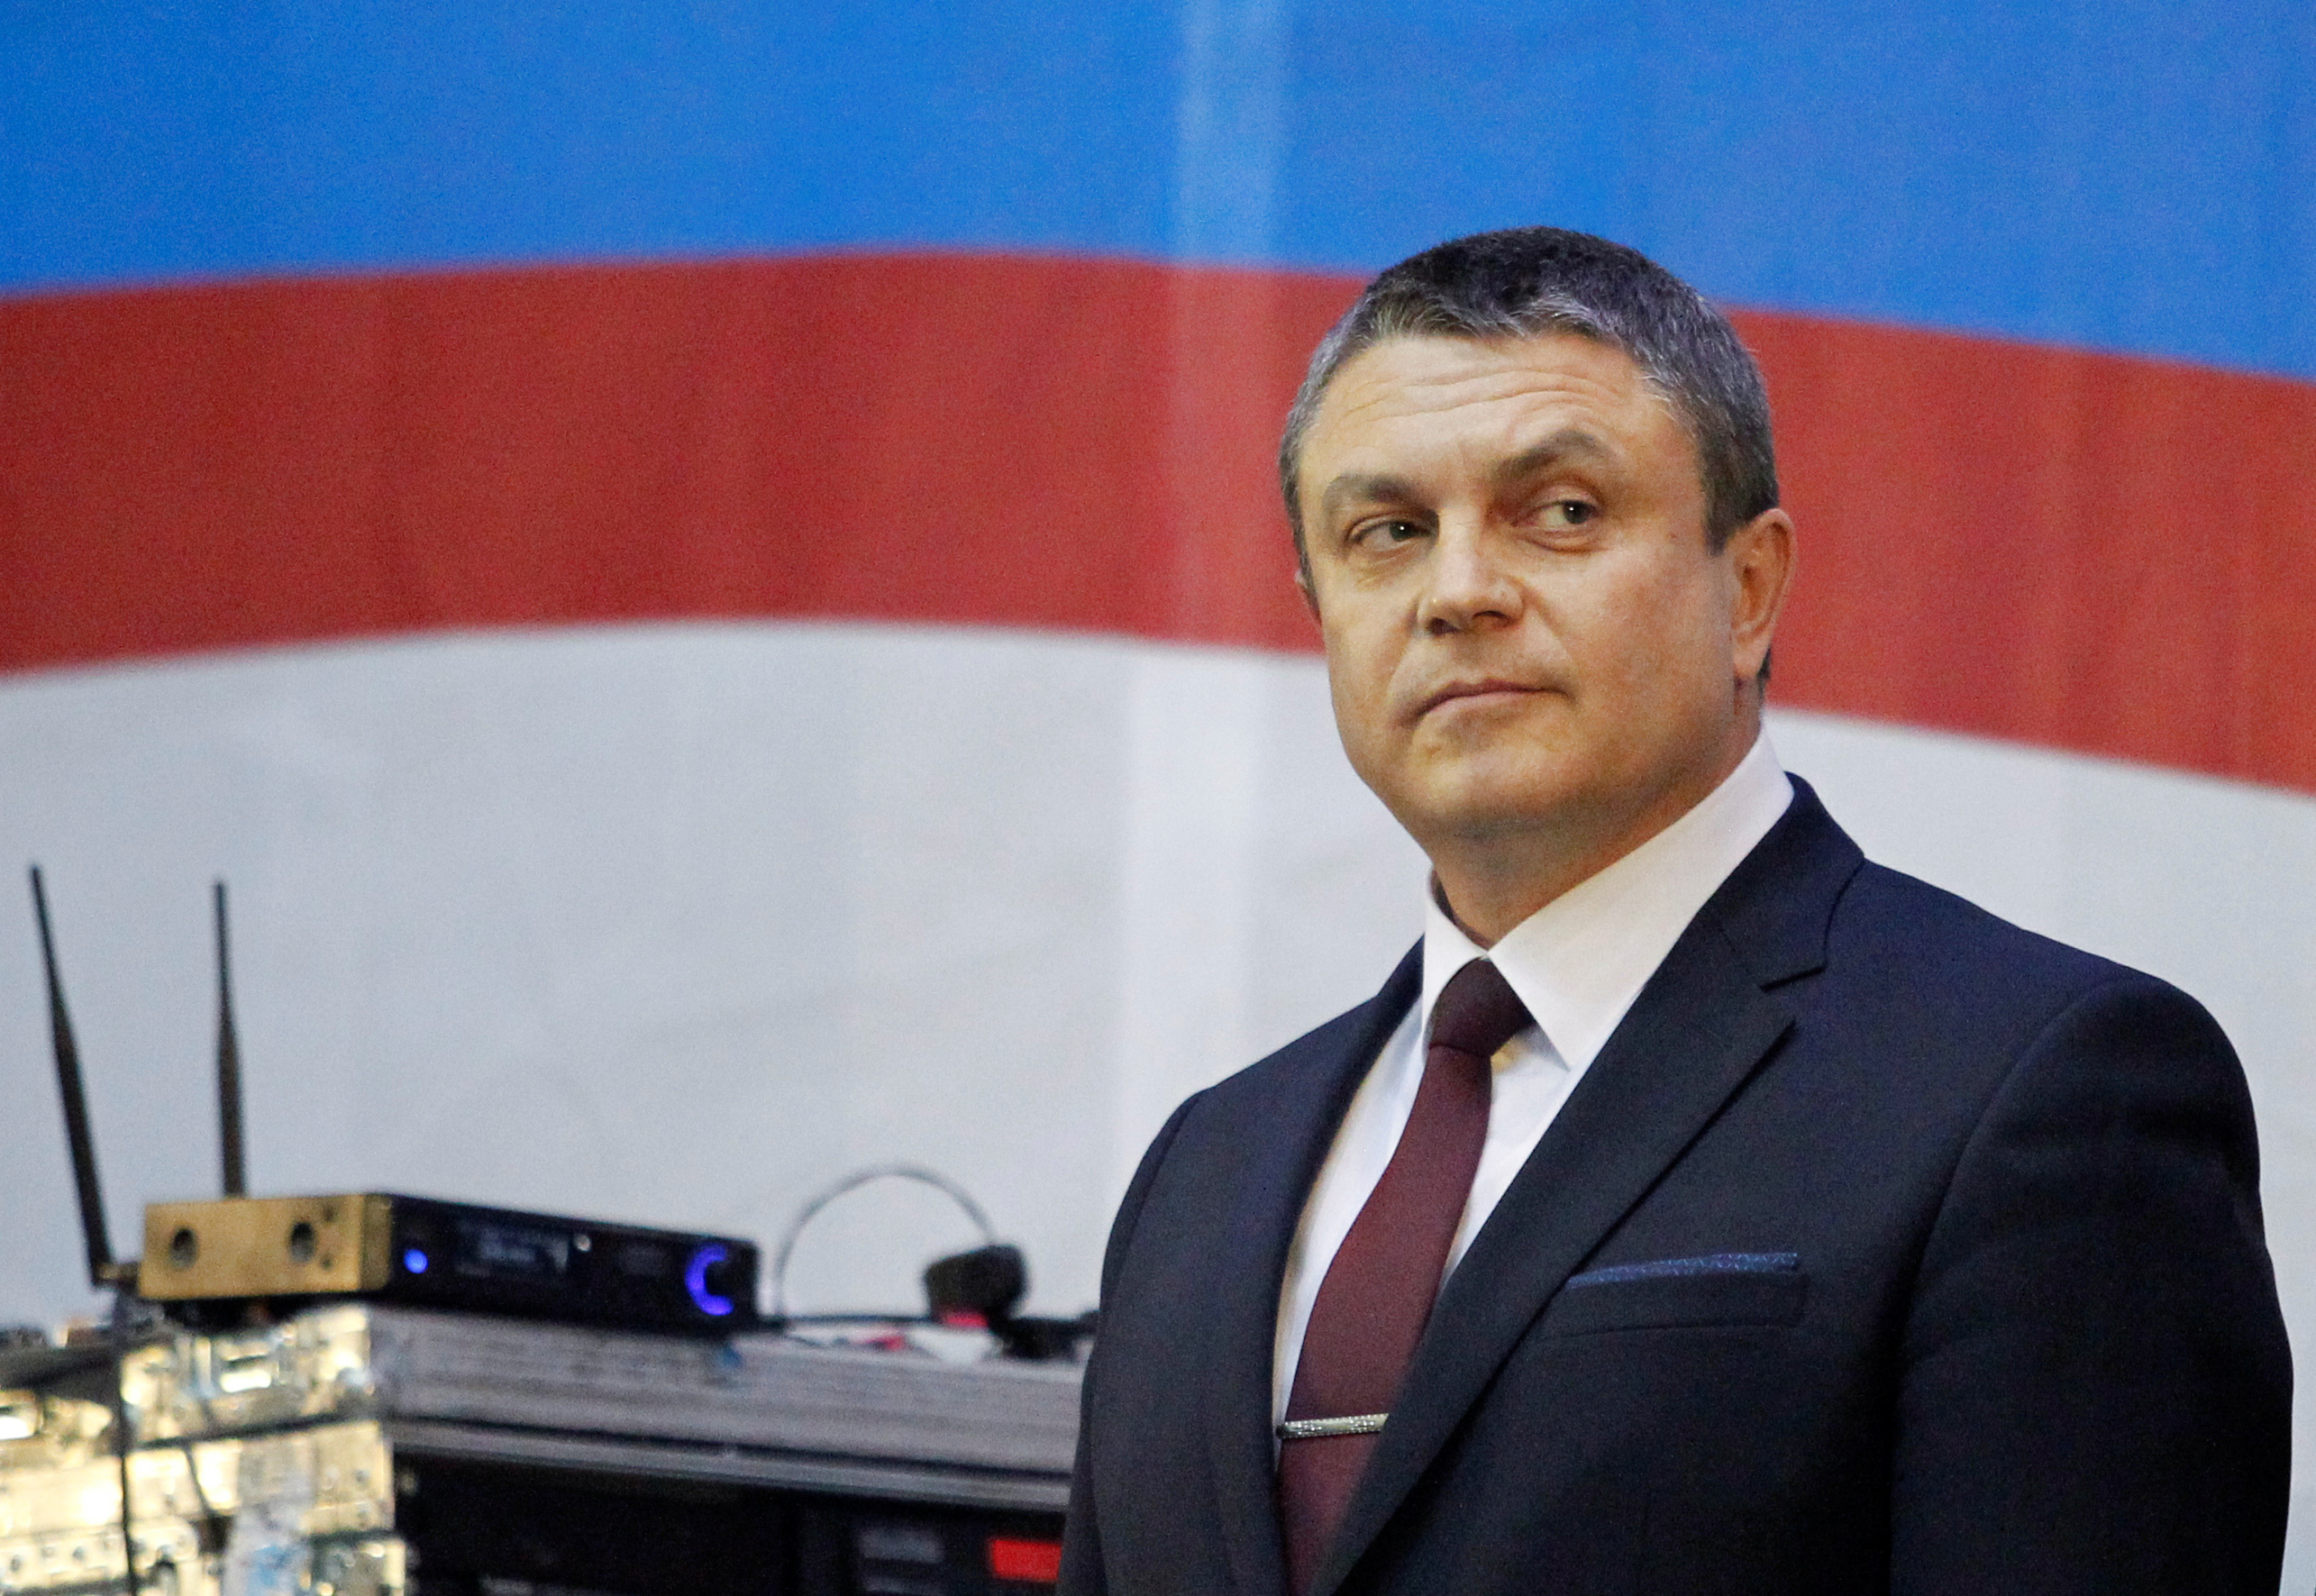 FILE - Acting head of the self-proclaimed separatist Luhansk People's Republic (LNR) Leonid Pasechnik stands on the stage during his pre-election address ahead of the upcoming vote for a new leader in Luhansk, Ukraine, Nov. 8, 2018.